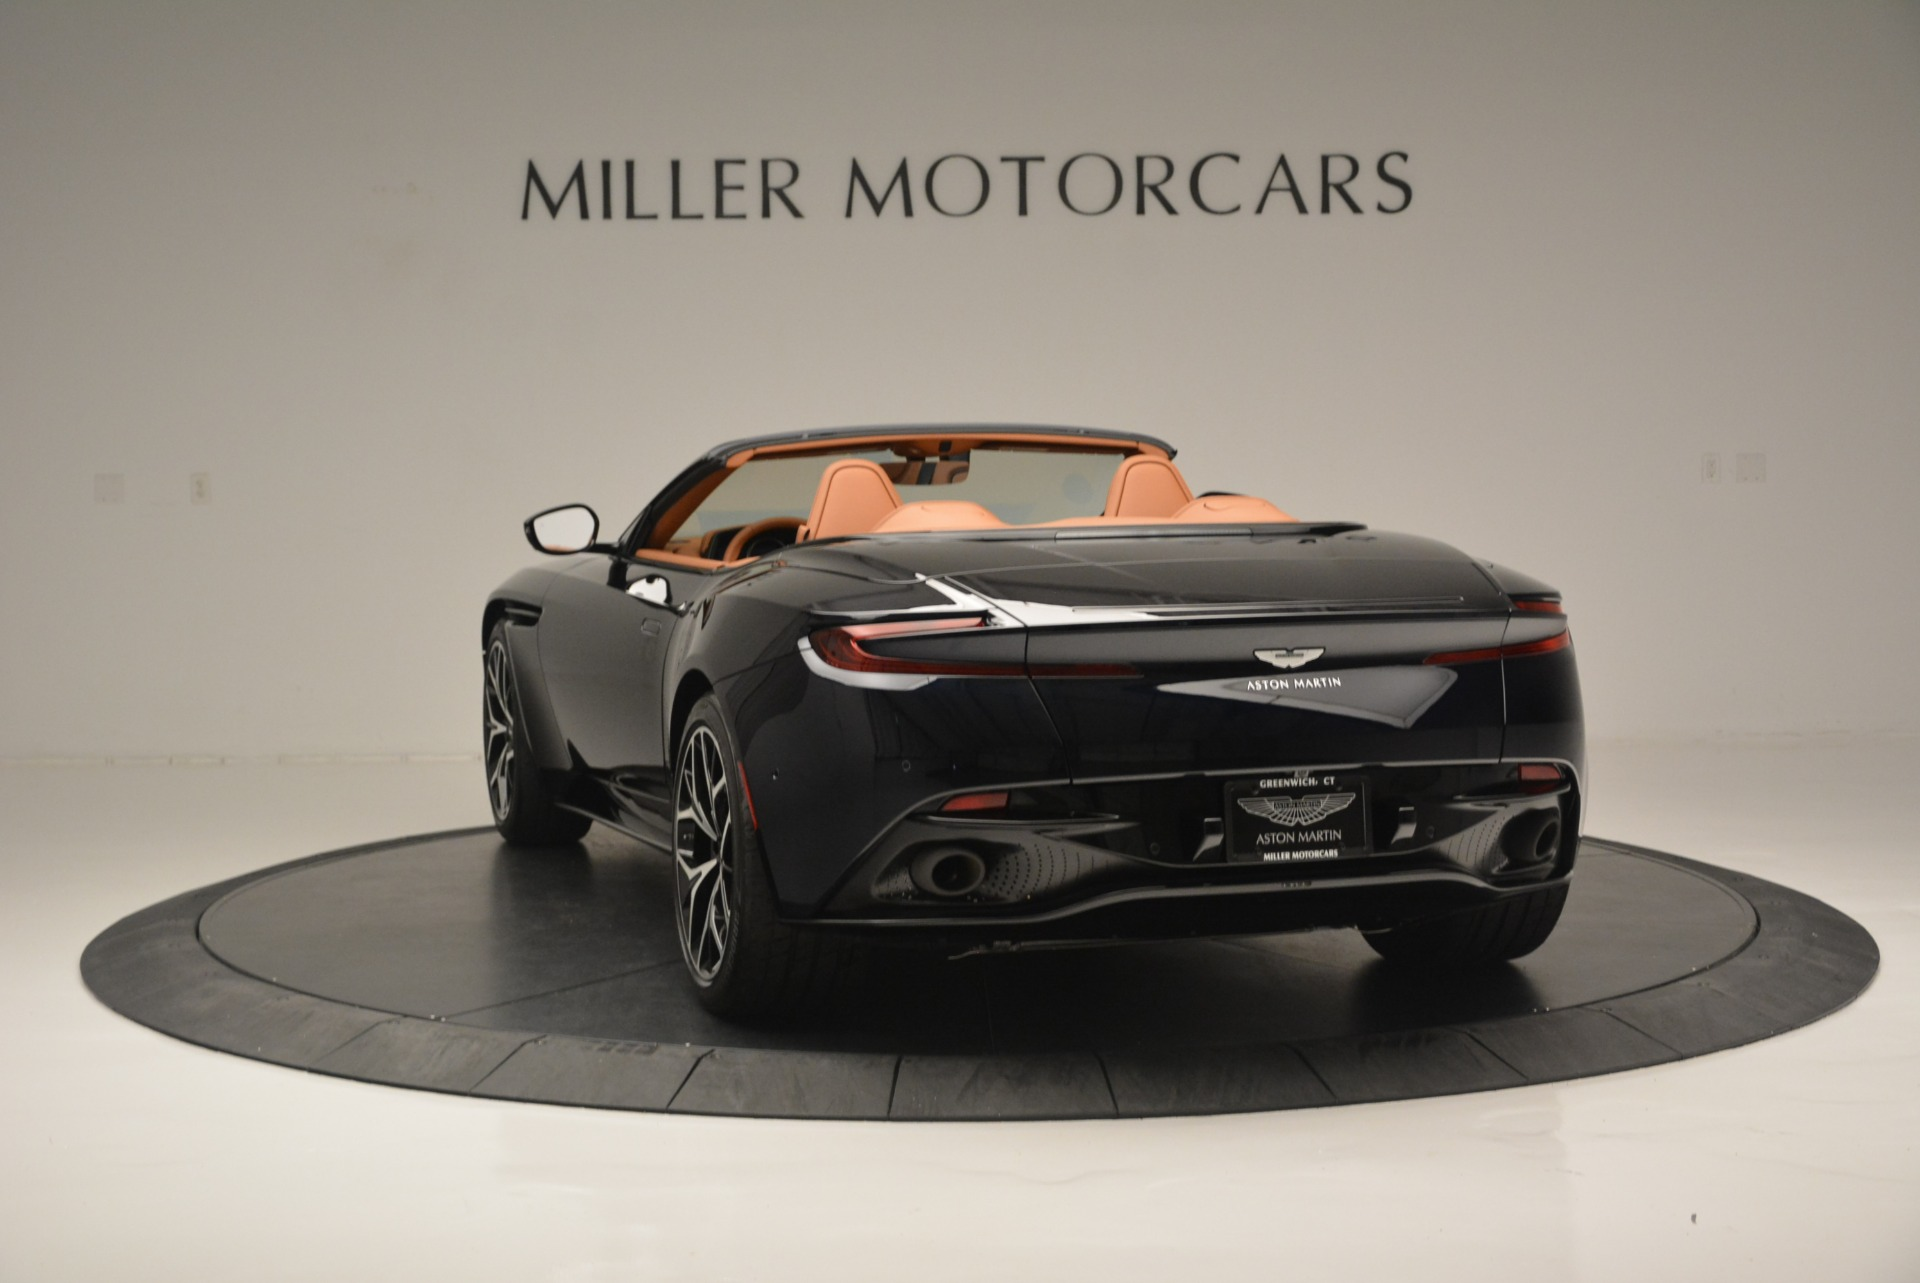 New 2019 Aston Martin DB11 Volante Volante For Sale In Westport, CT 2450_p5